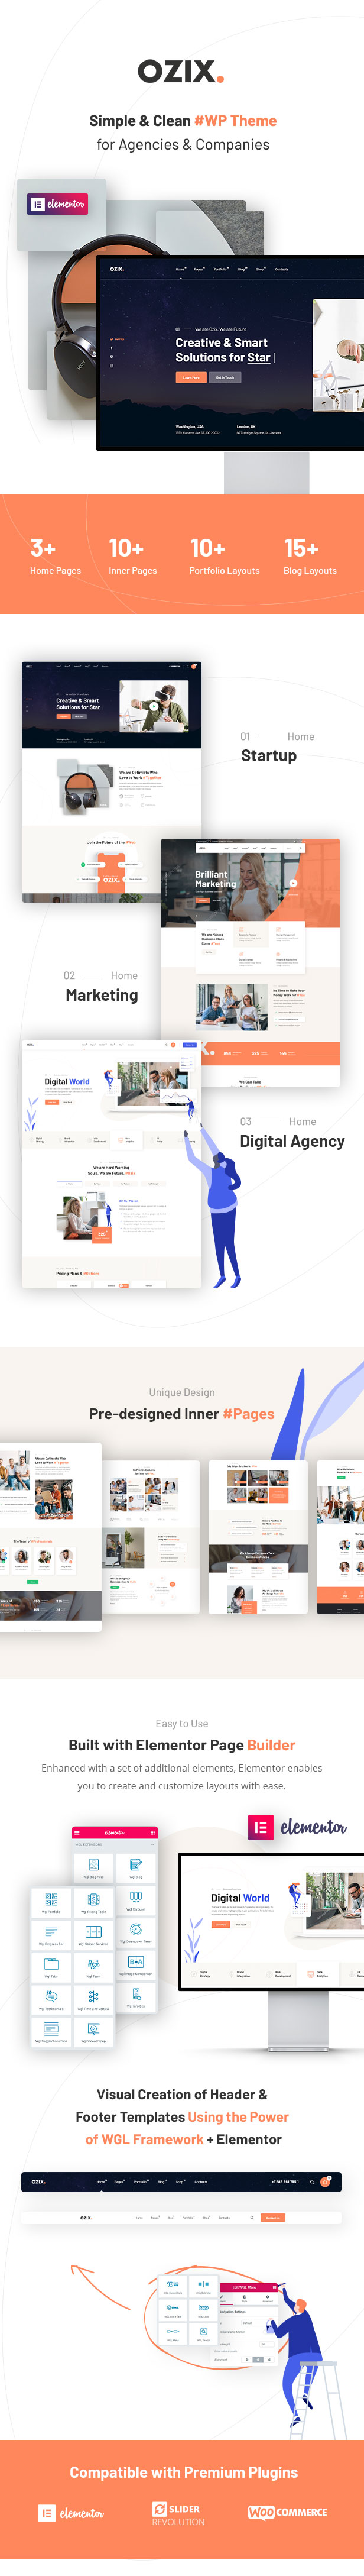 Ozix - Agencies and Companies WordPress Theme - 1